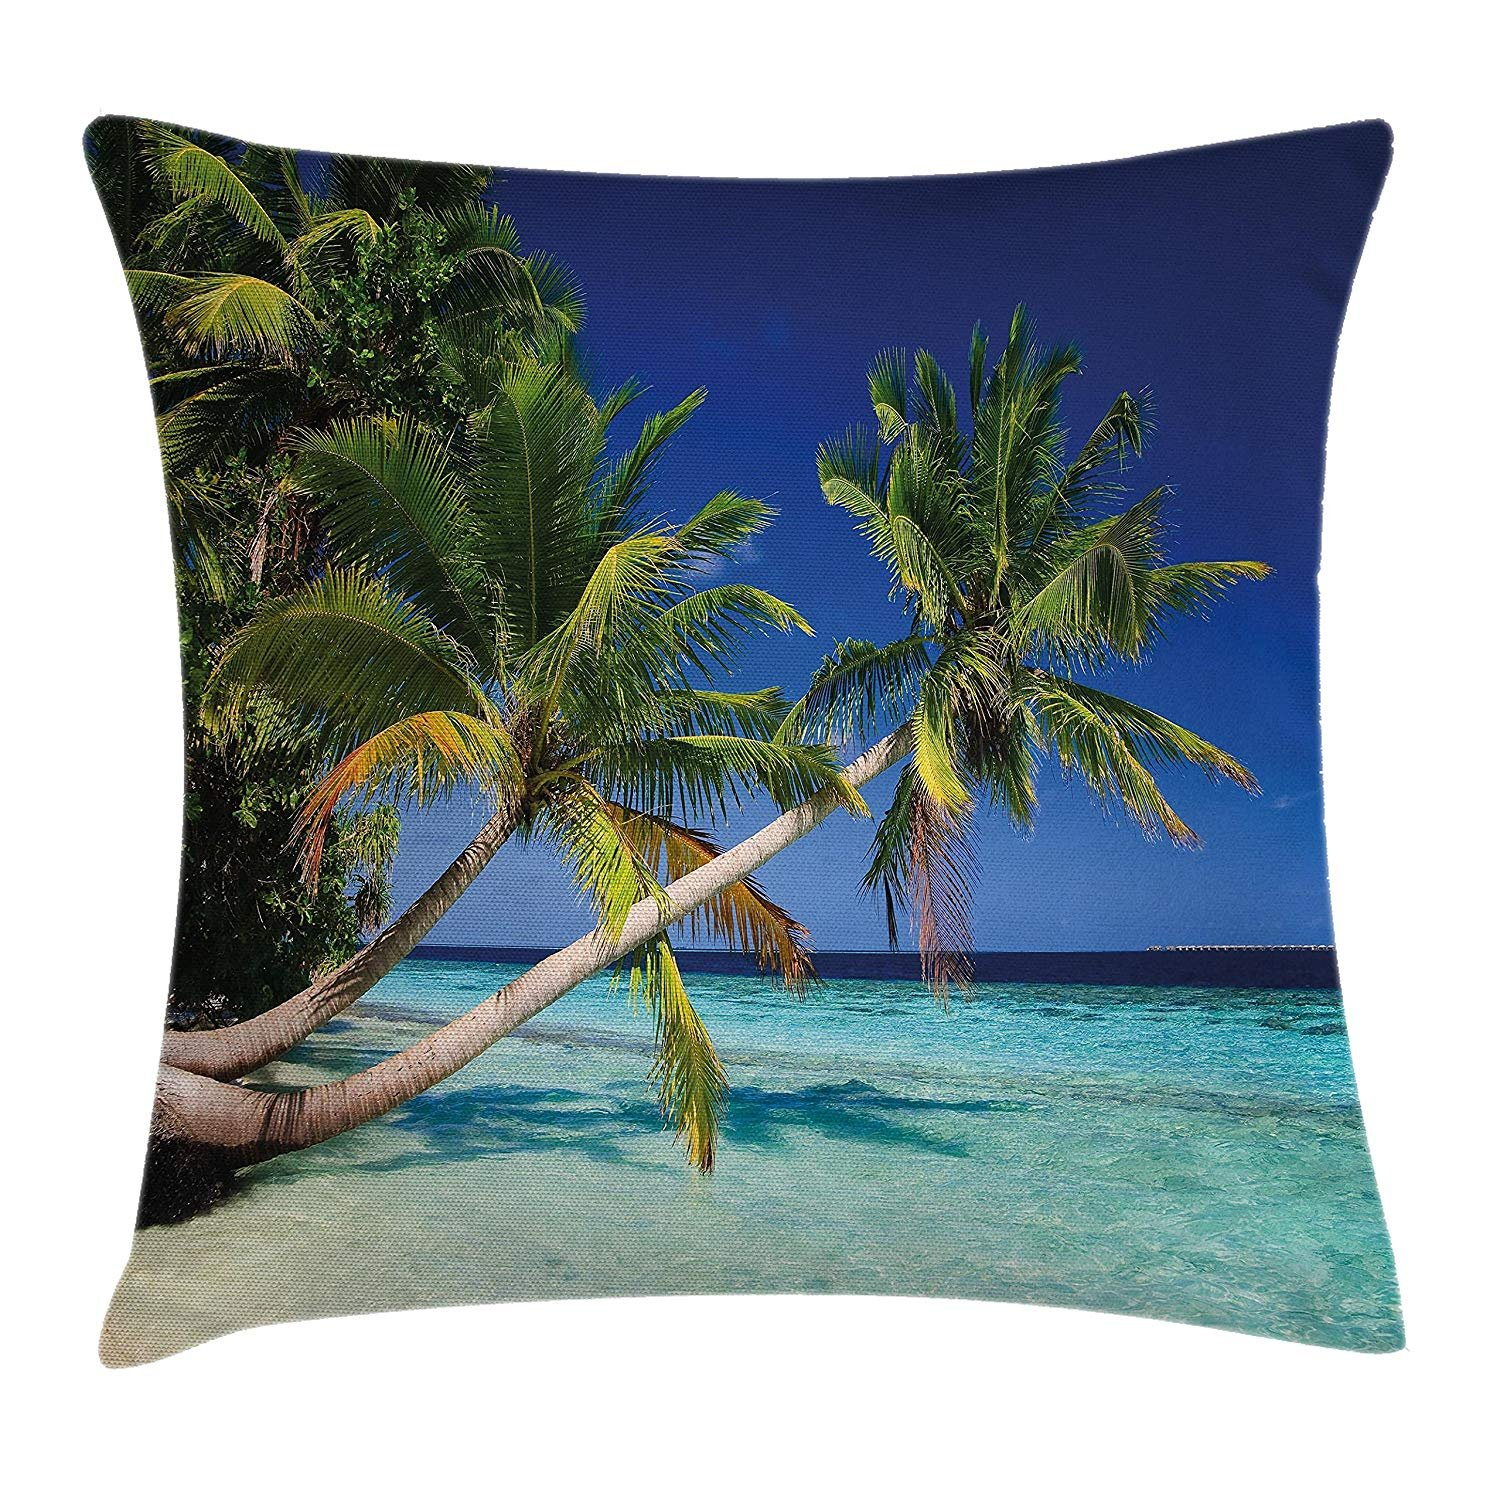 Tropical Throw Pillow Cushion Cover, Exotic Maldives Beach with Palms Paradise Coast Vacation Scenery, Decorative Square Accent Pillow Case, 20 X 20 Inches, Blue Turquoise Fern Green Trsdshorts